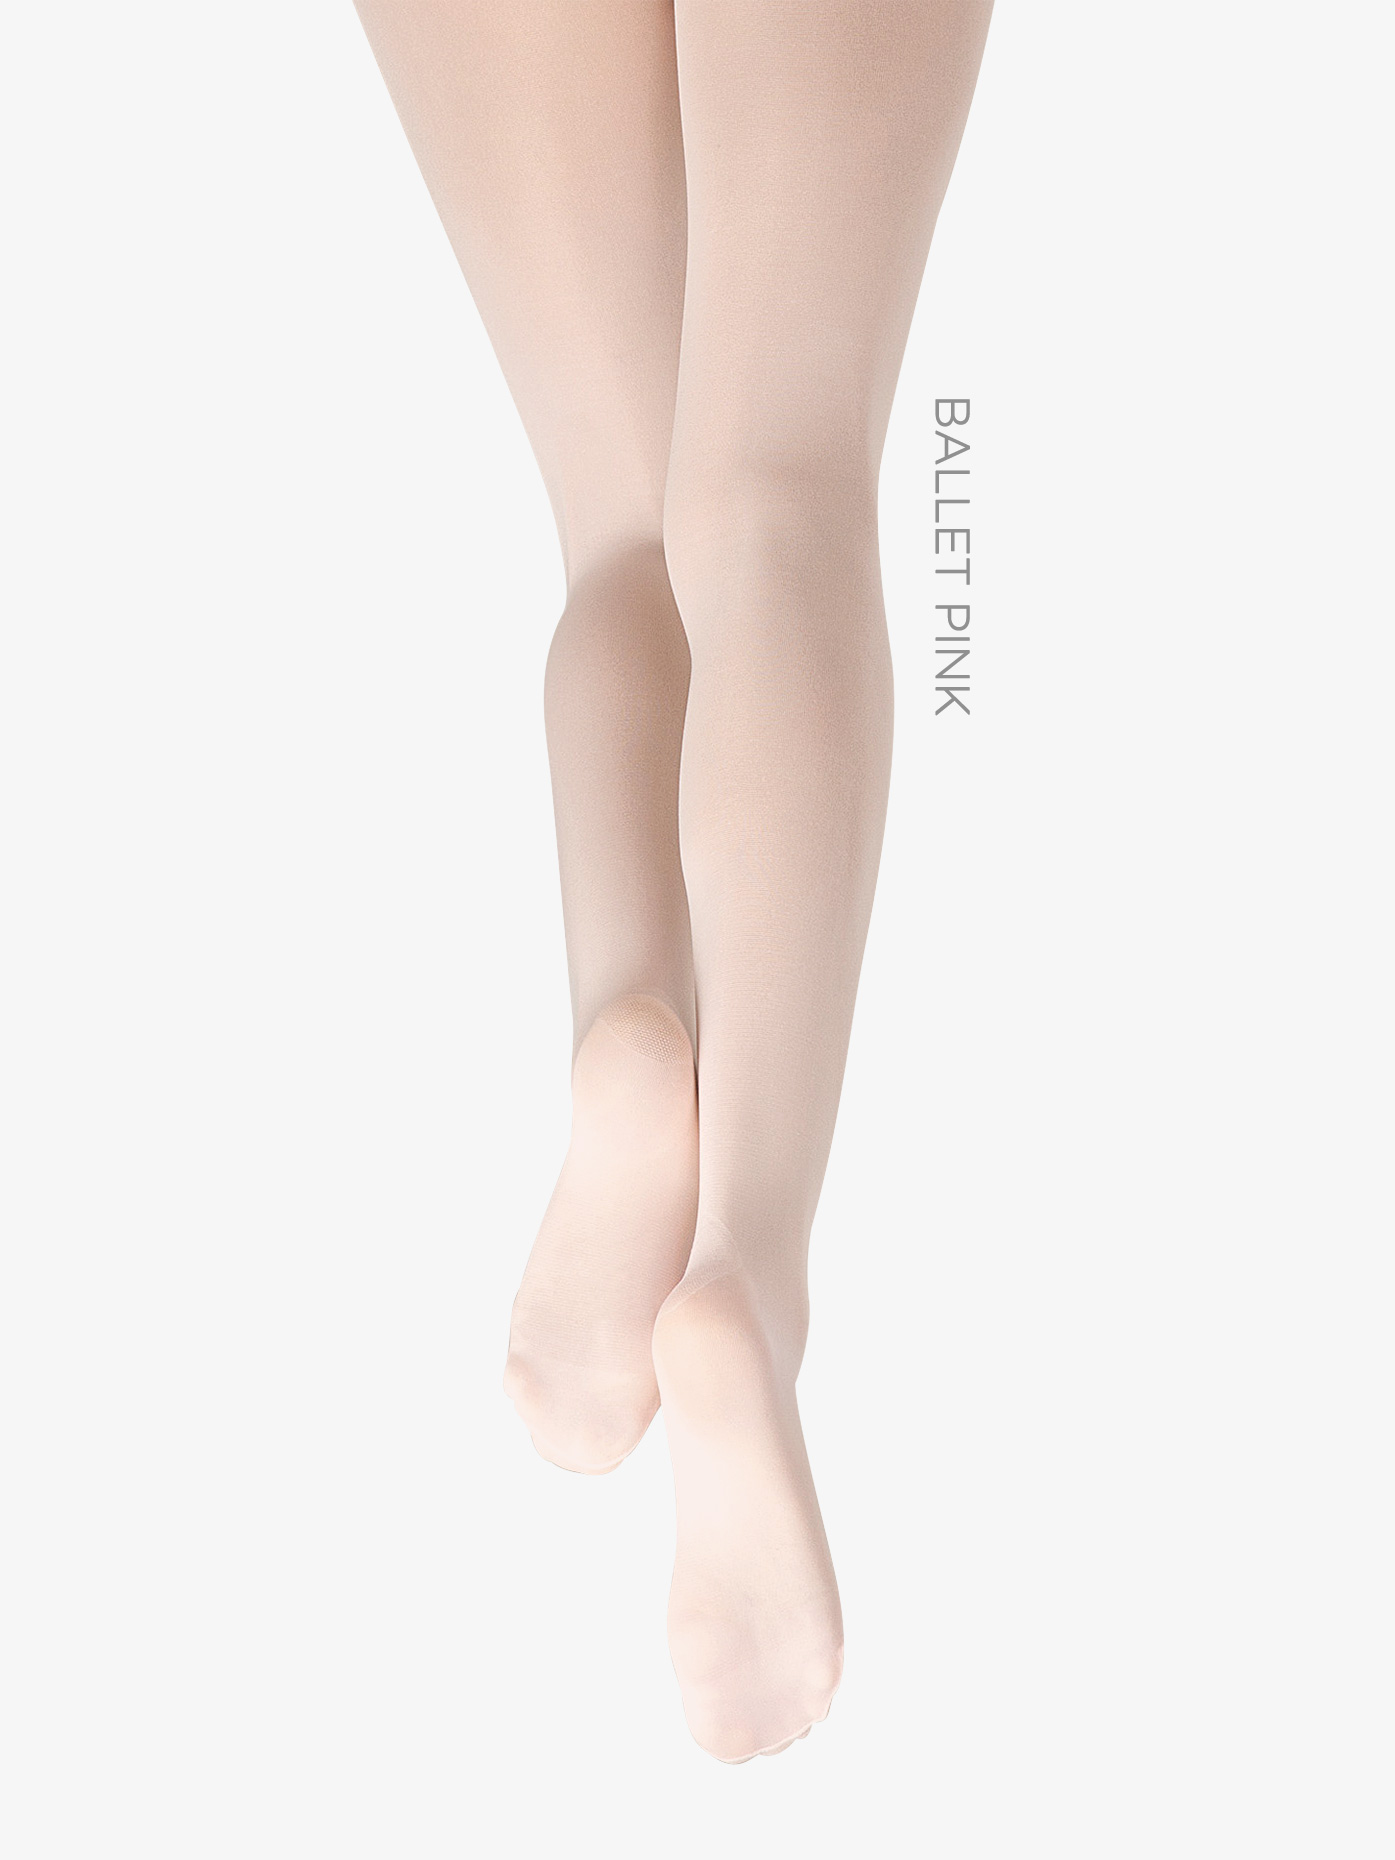 ab8b11bdd6c3 Hold   Stretch Footed Tights - Footed Tights